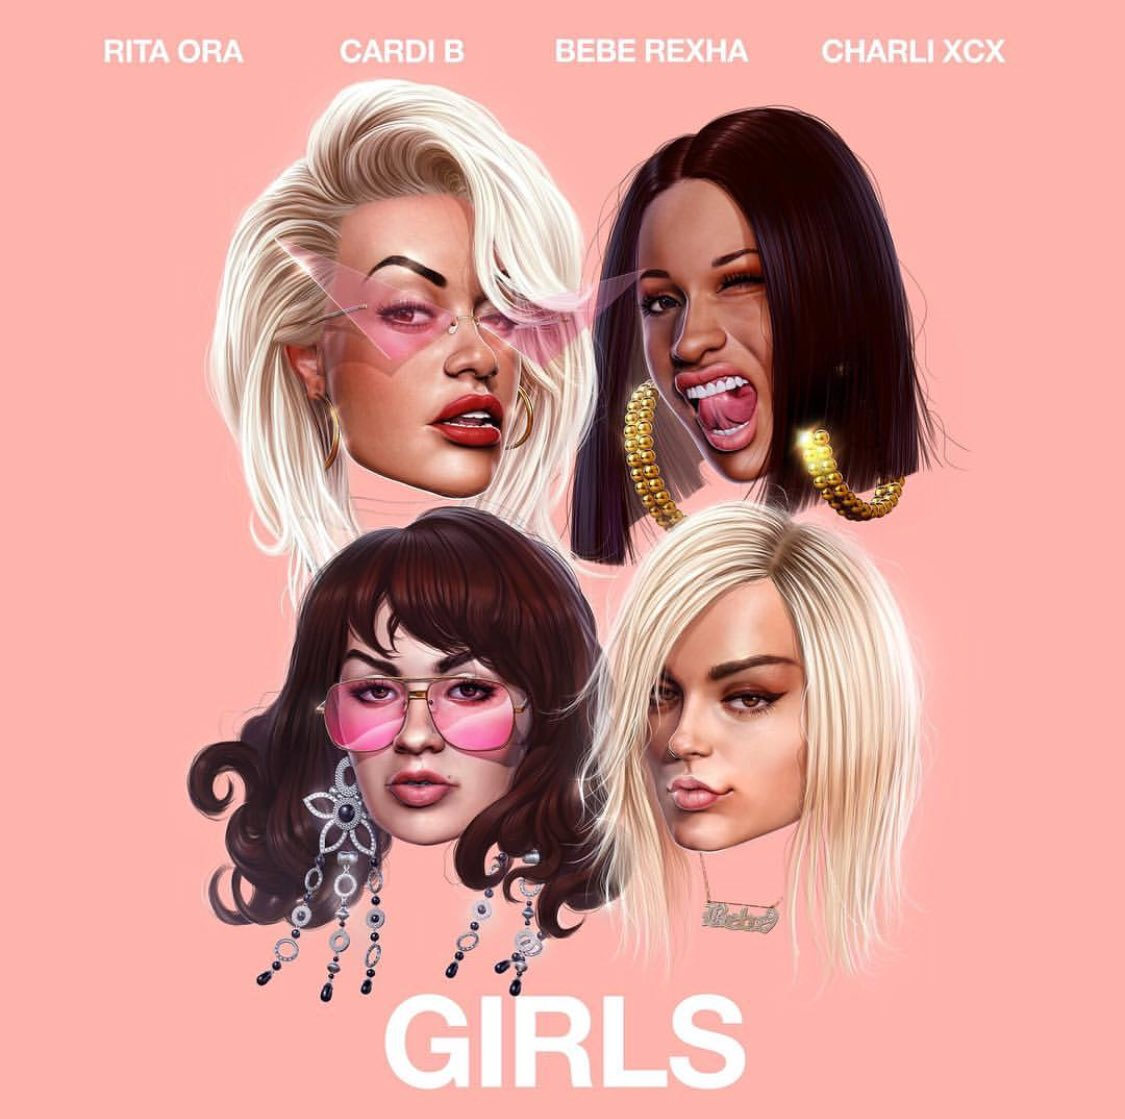 Hayley Kiyoko Takes Issue With Rita Ora's New Song 'Girls'